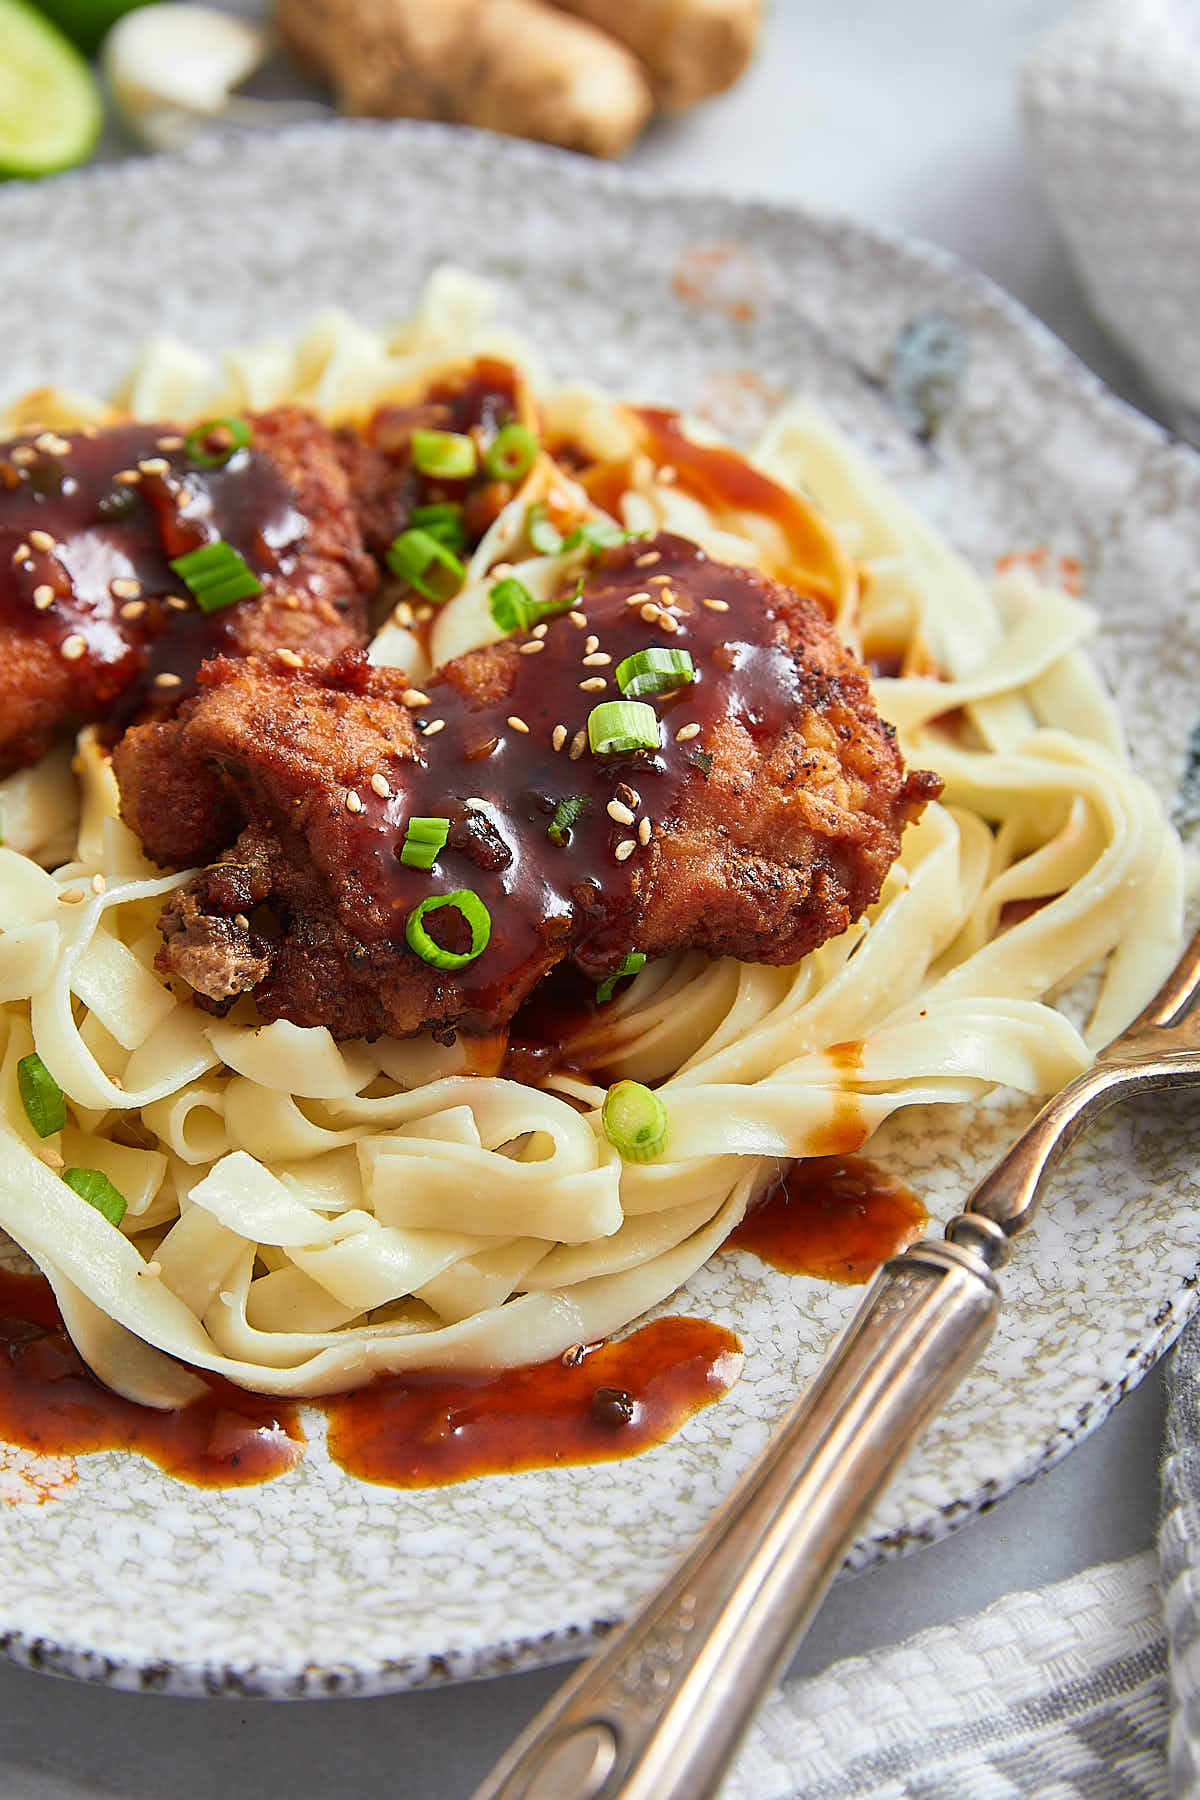 Boneless Skinless Chicken Thighs with Lime-Sesame BBQ Sauce - crispy fried chicken thighs served with a delicious BBQ sauce and a bowl of pasta. | ifoodblogger.com